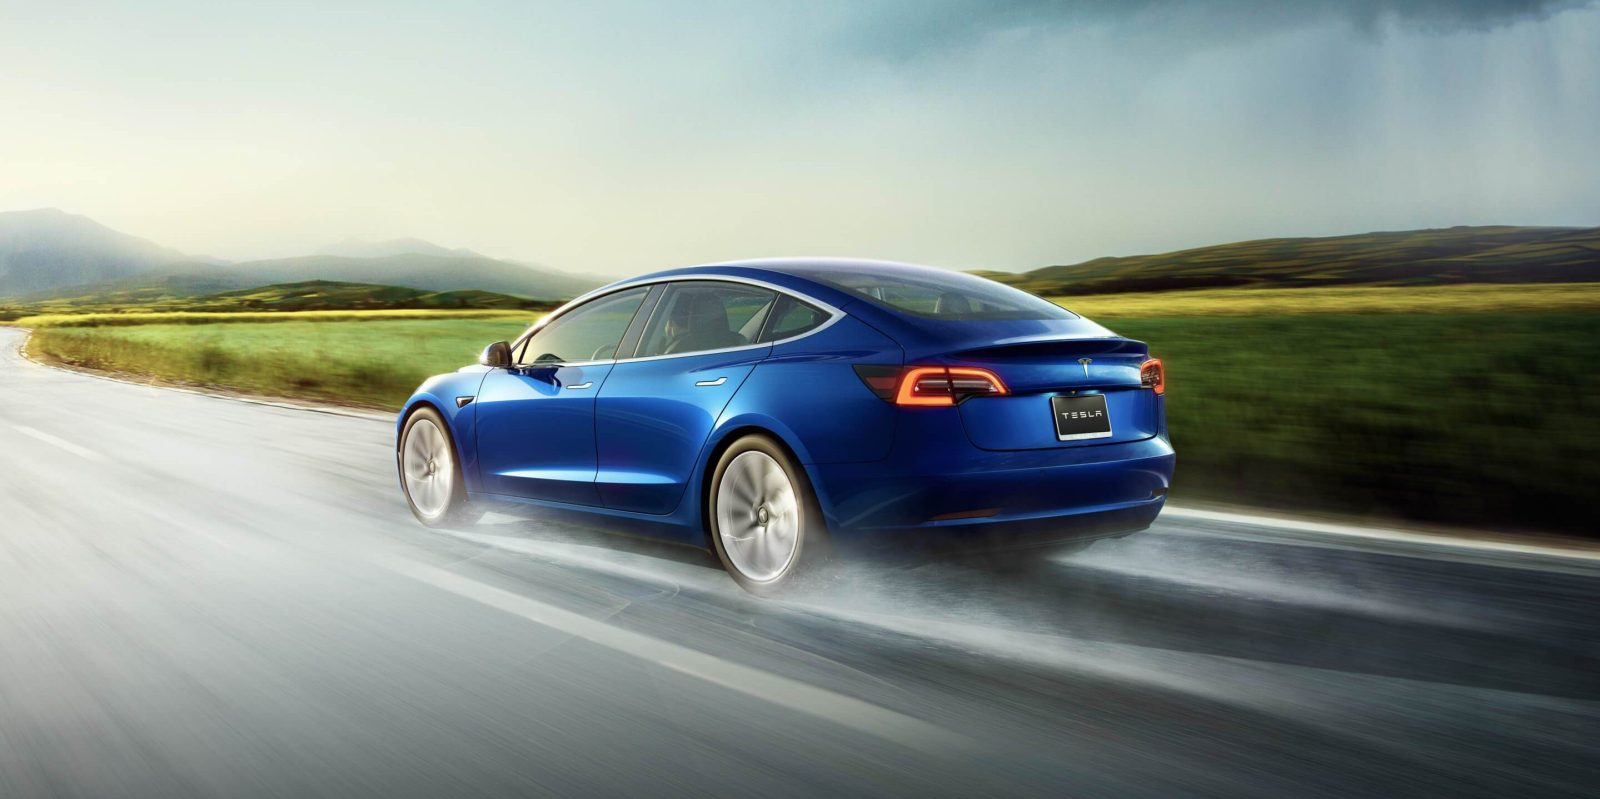 Tesla Model 3 At 35 000 Is Curly Impossible Says Elon